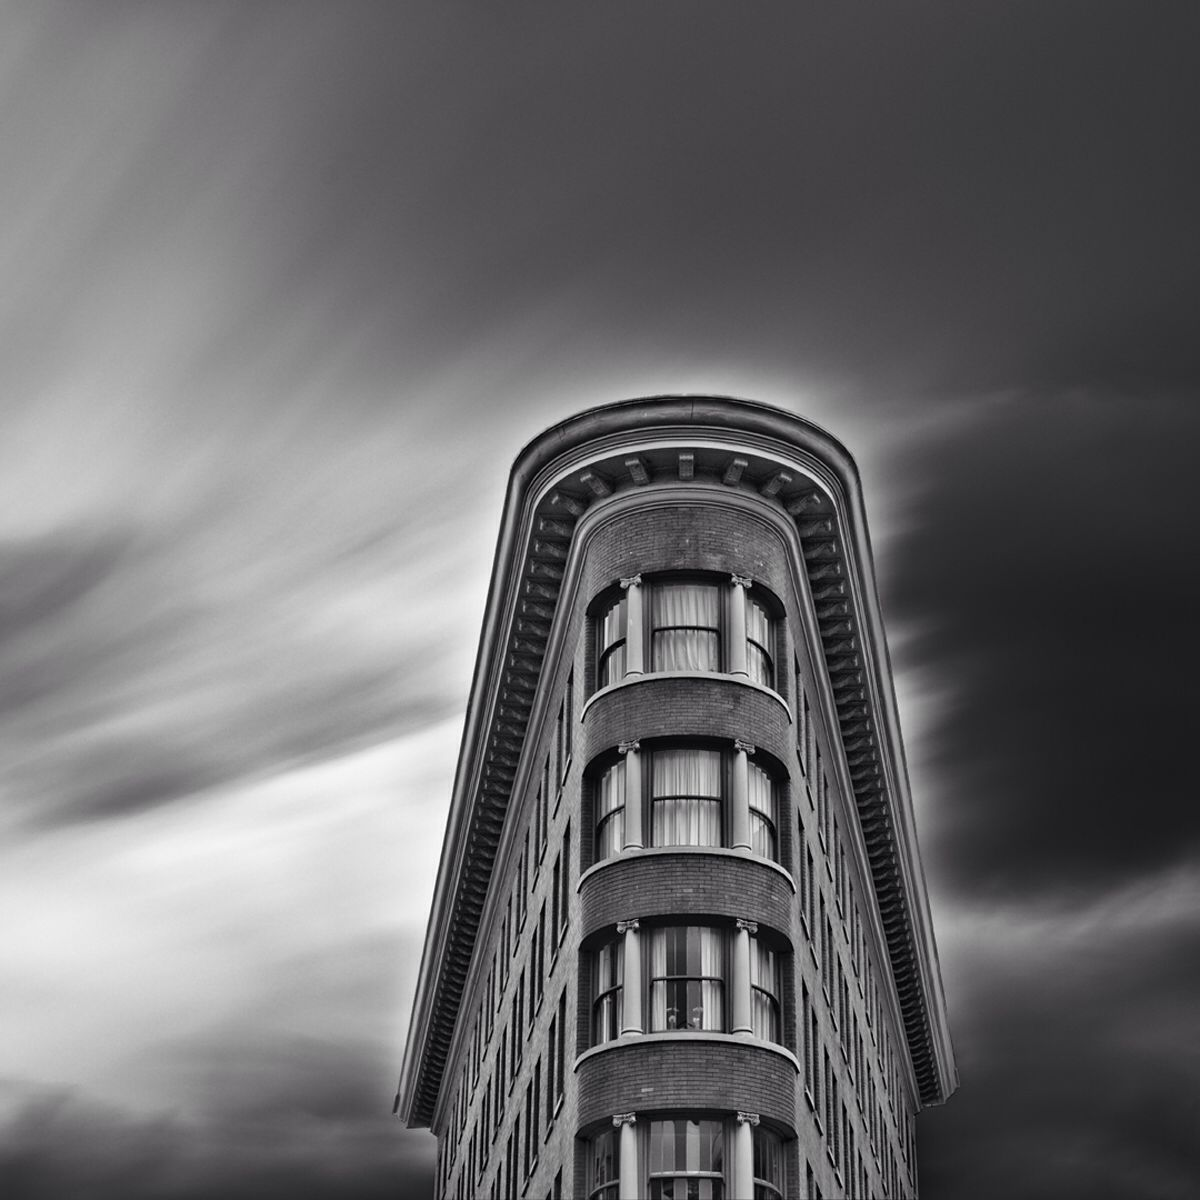 Architecture Photography Ideas long exposure architecture photography ideas | research: media